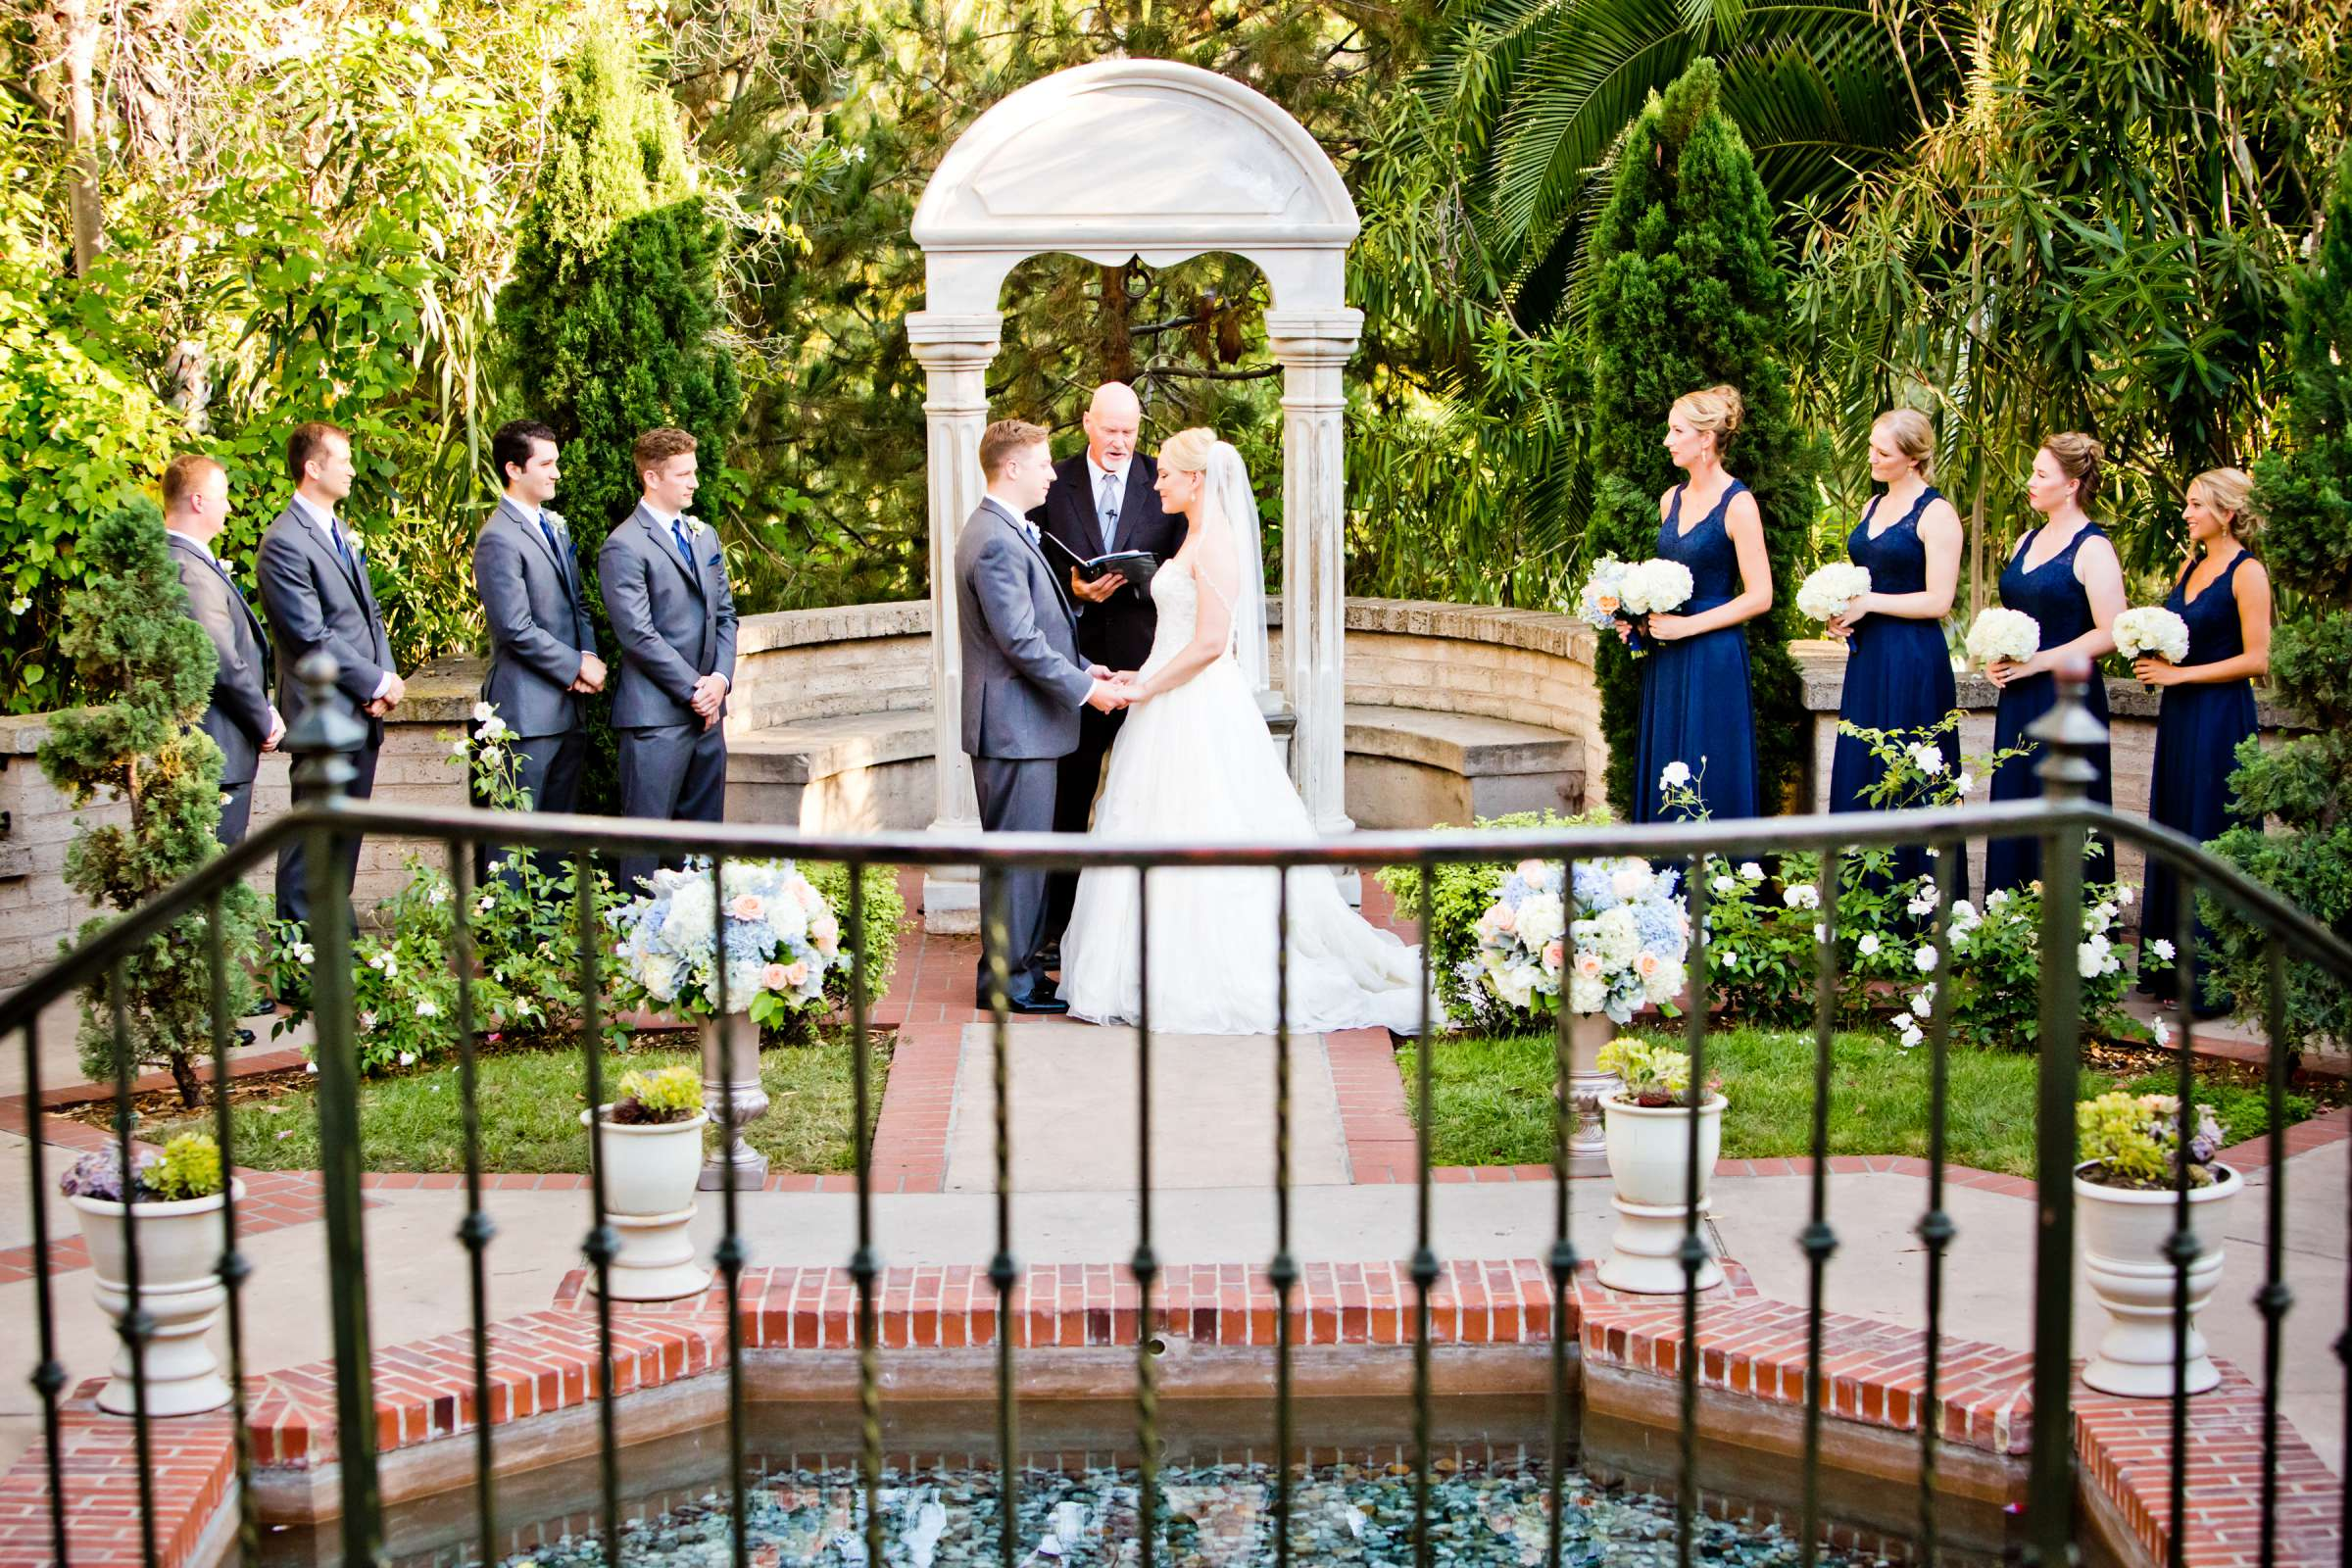 The Prado Wedding coordinated by Sublime Weddings, Ashley and Andrew Wedding Photo #33 by True Photography